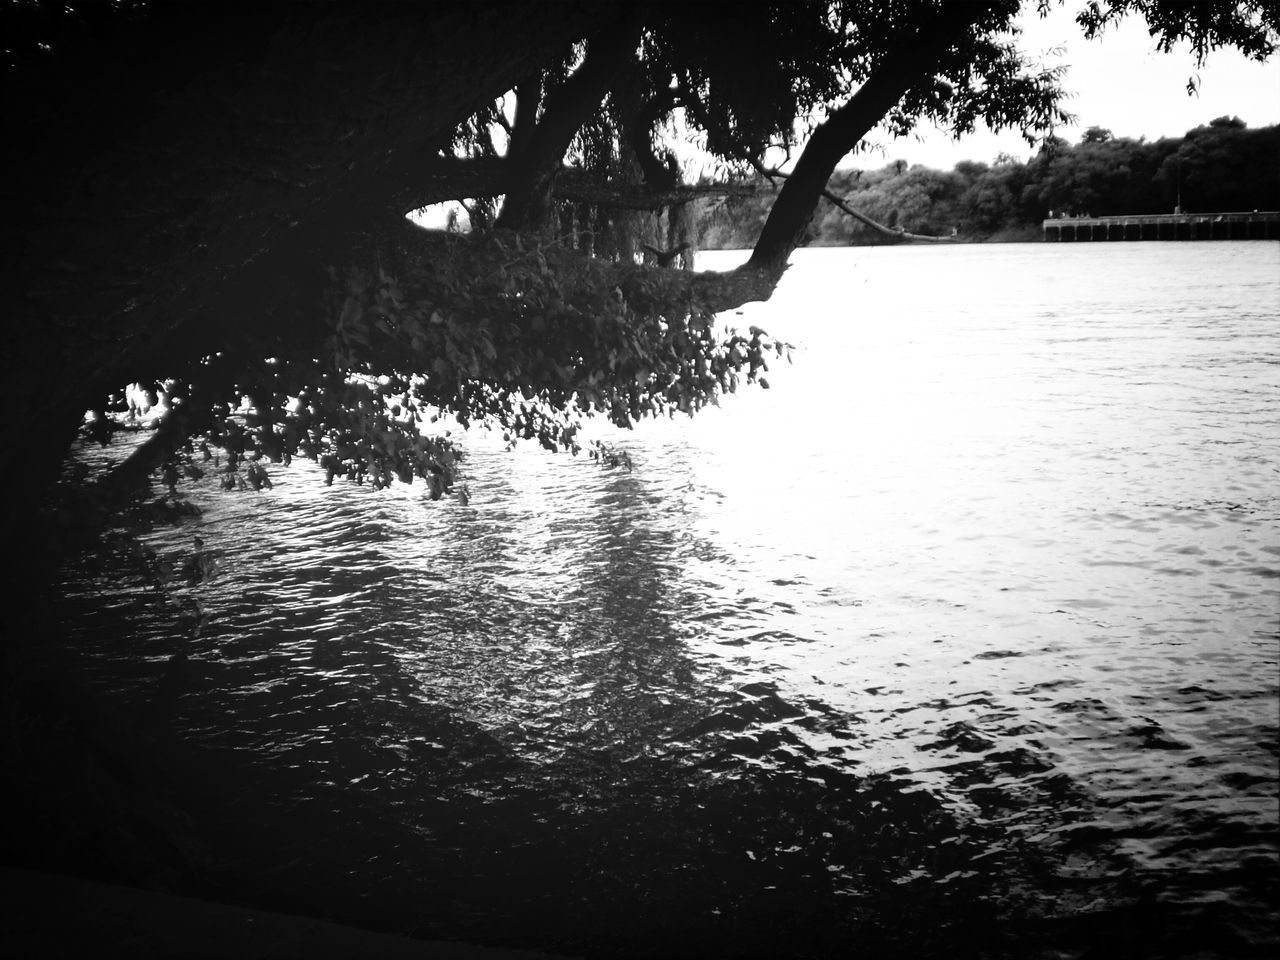 tree, water, nature, tranquility, tranquil scene, no people, outdoors, lake, scenics, day, beauty in nature, sky